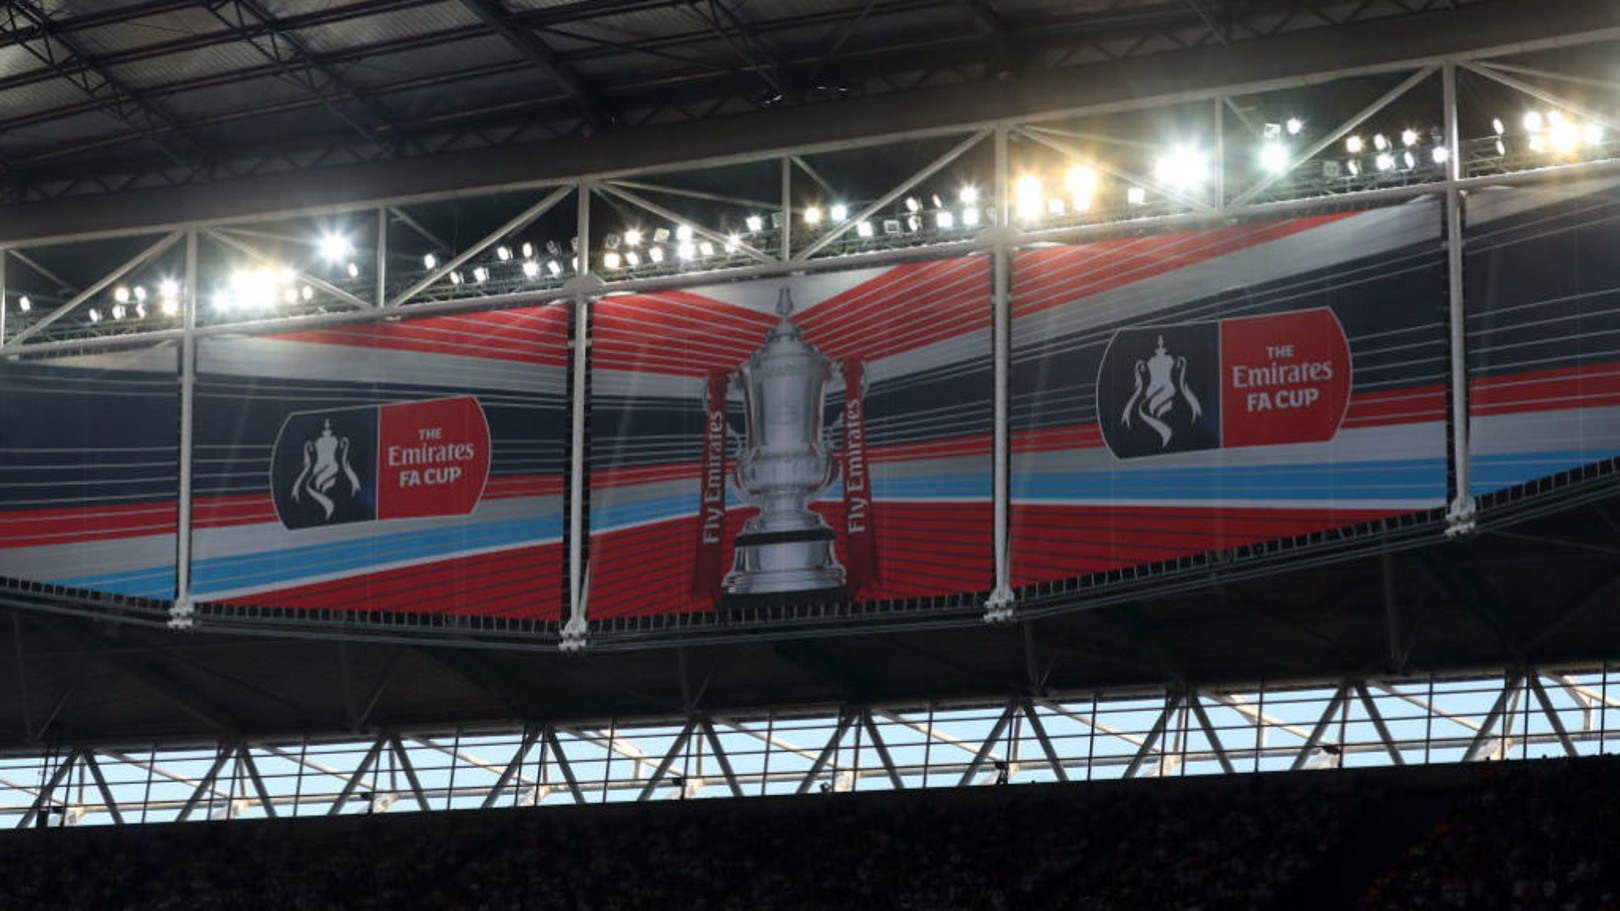 FA CUP: City are in the hat for the semi-final draw